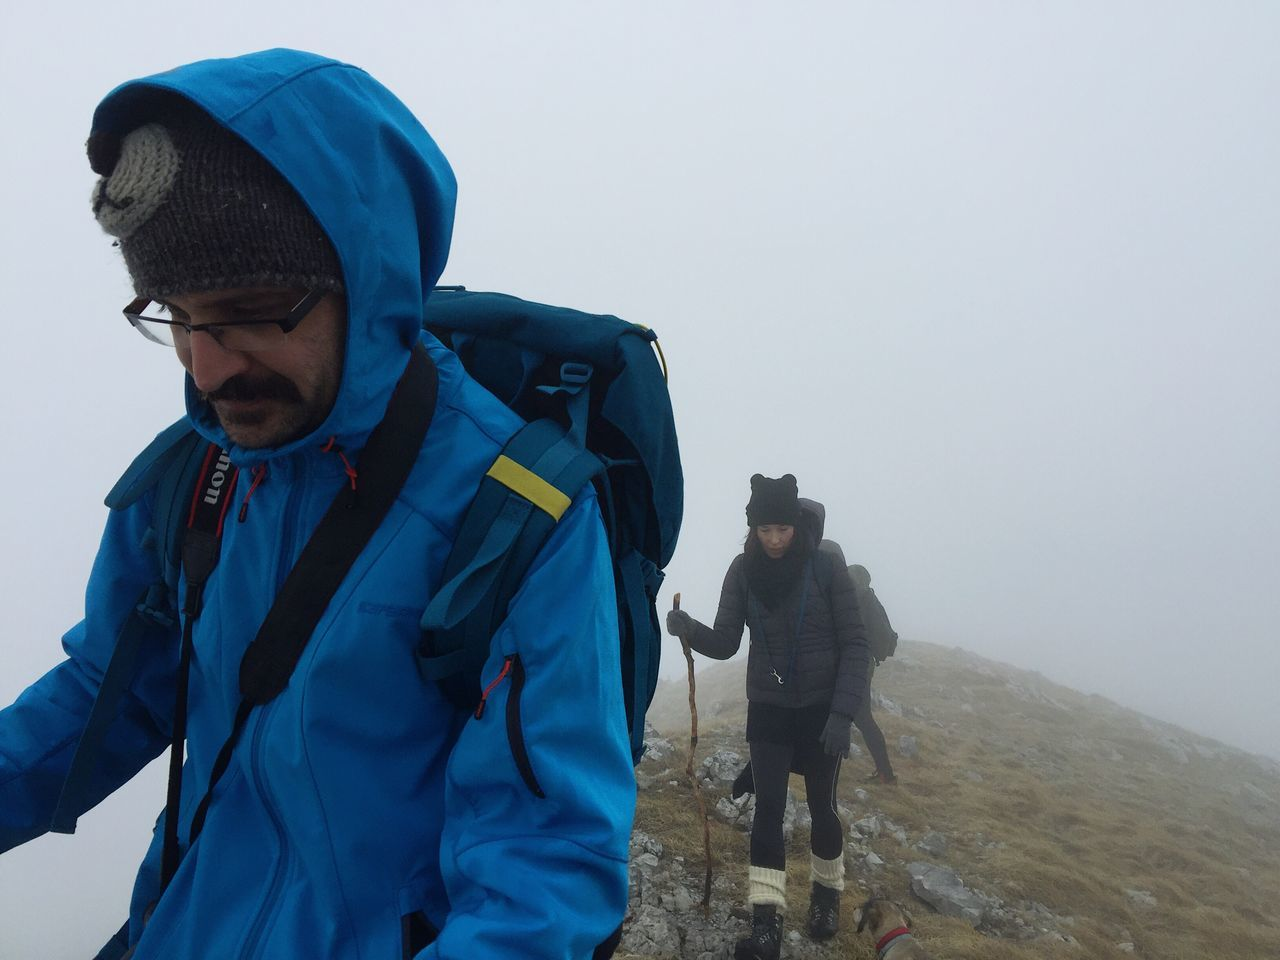 Luka approaching summit of Snjeznik (1505 m), strong wind and low visibility, Croatia, 2017. Hiking Visibility Wind Outdoors Cold Temperature Leisure Activity Adventure Lifestyles Snjeznik Croatia Blue Documentary